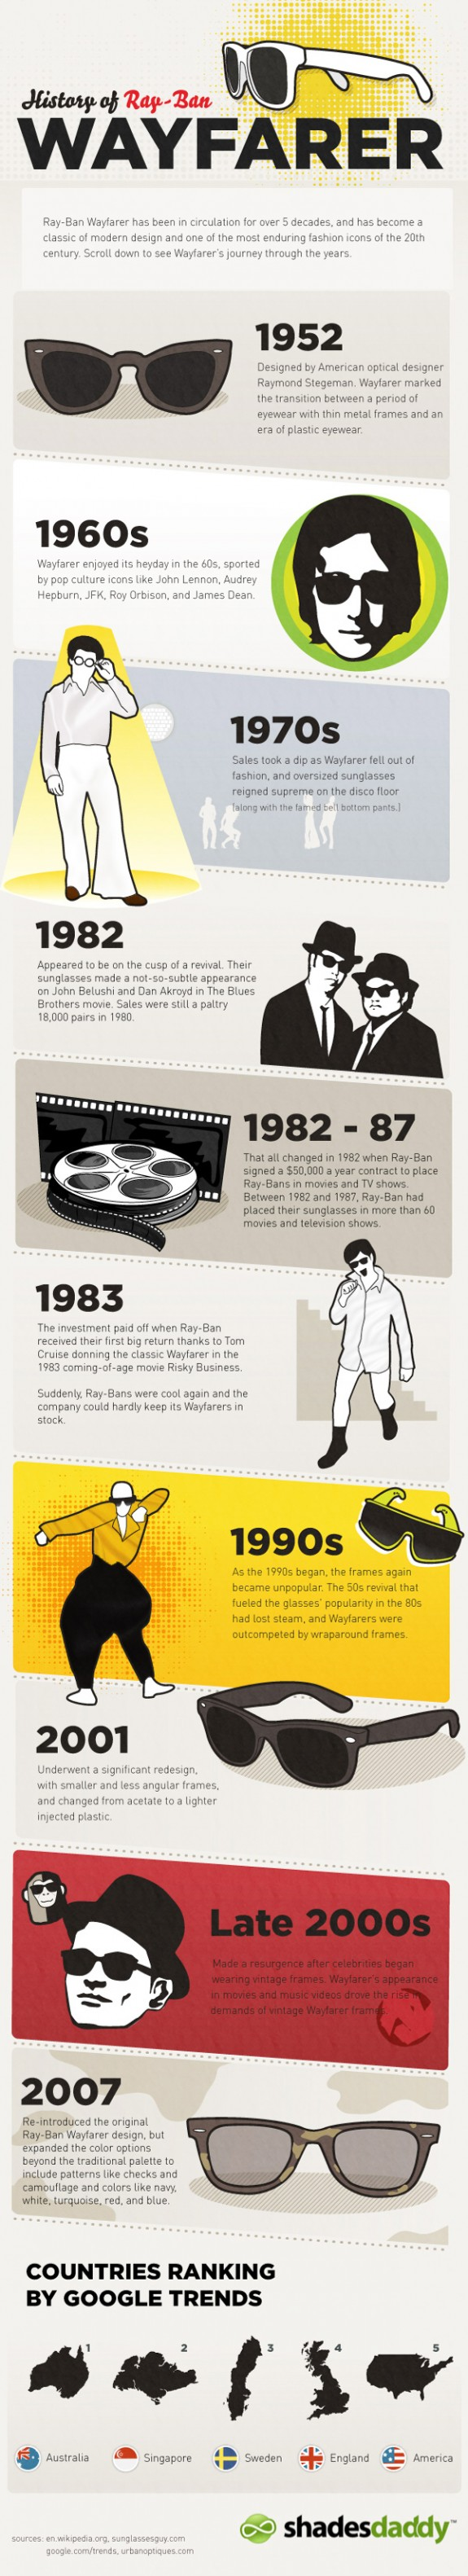 History of Ray-Ban Wayfarer Infographics